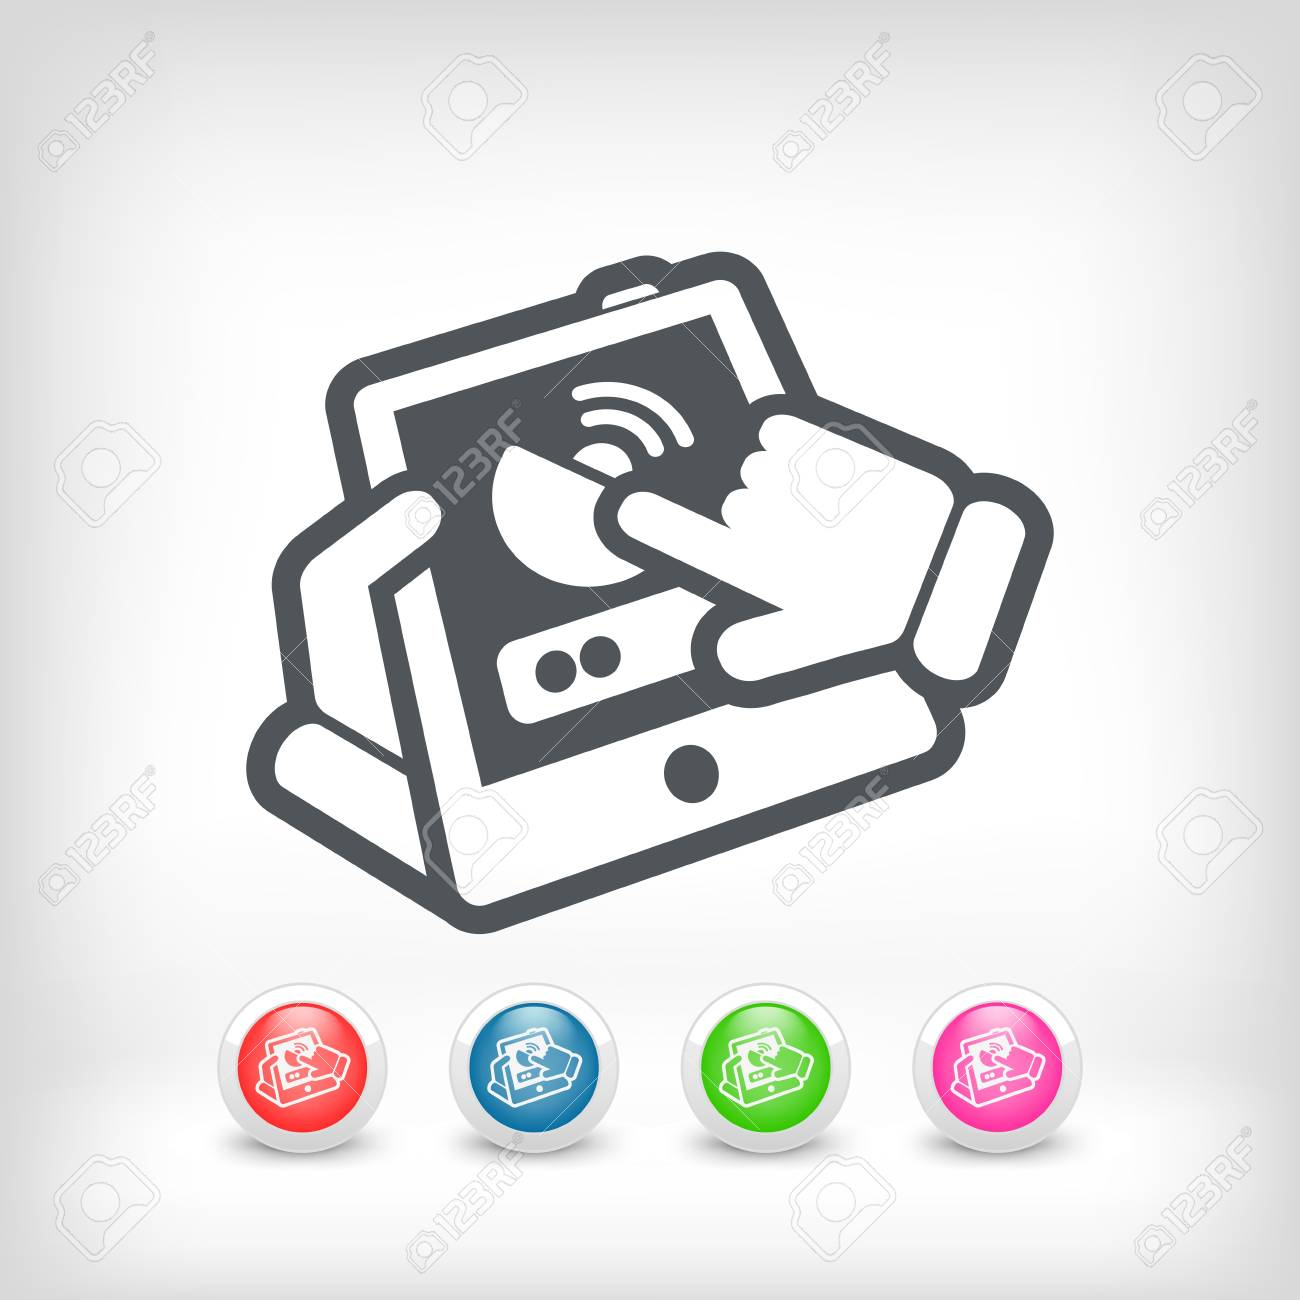 Antenna smartphone or tablet icon Stock Vector - 20236249